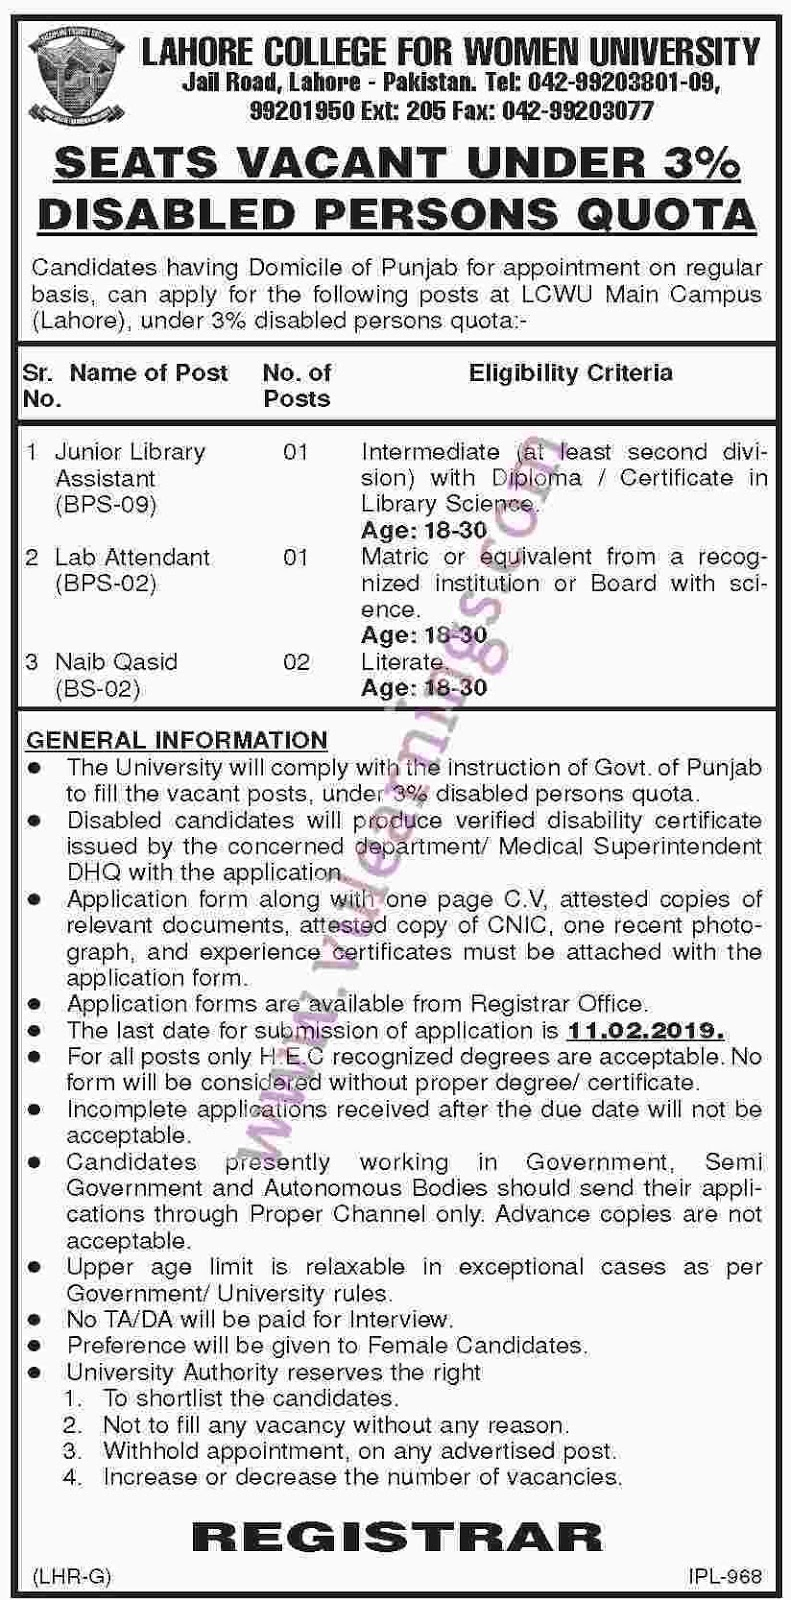 JOB IN LAHORE COLLEGE FOR WOMEN UNIVERSITY